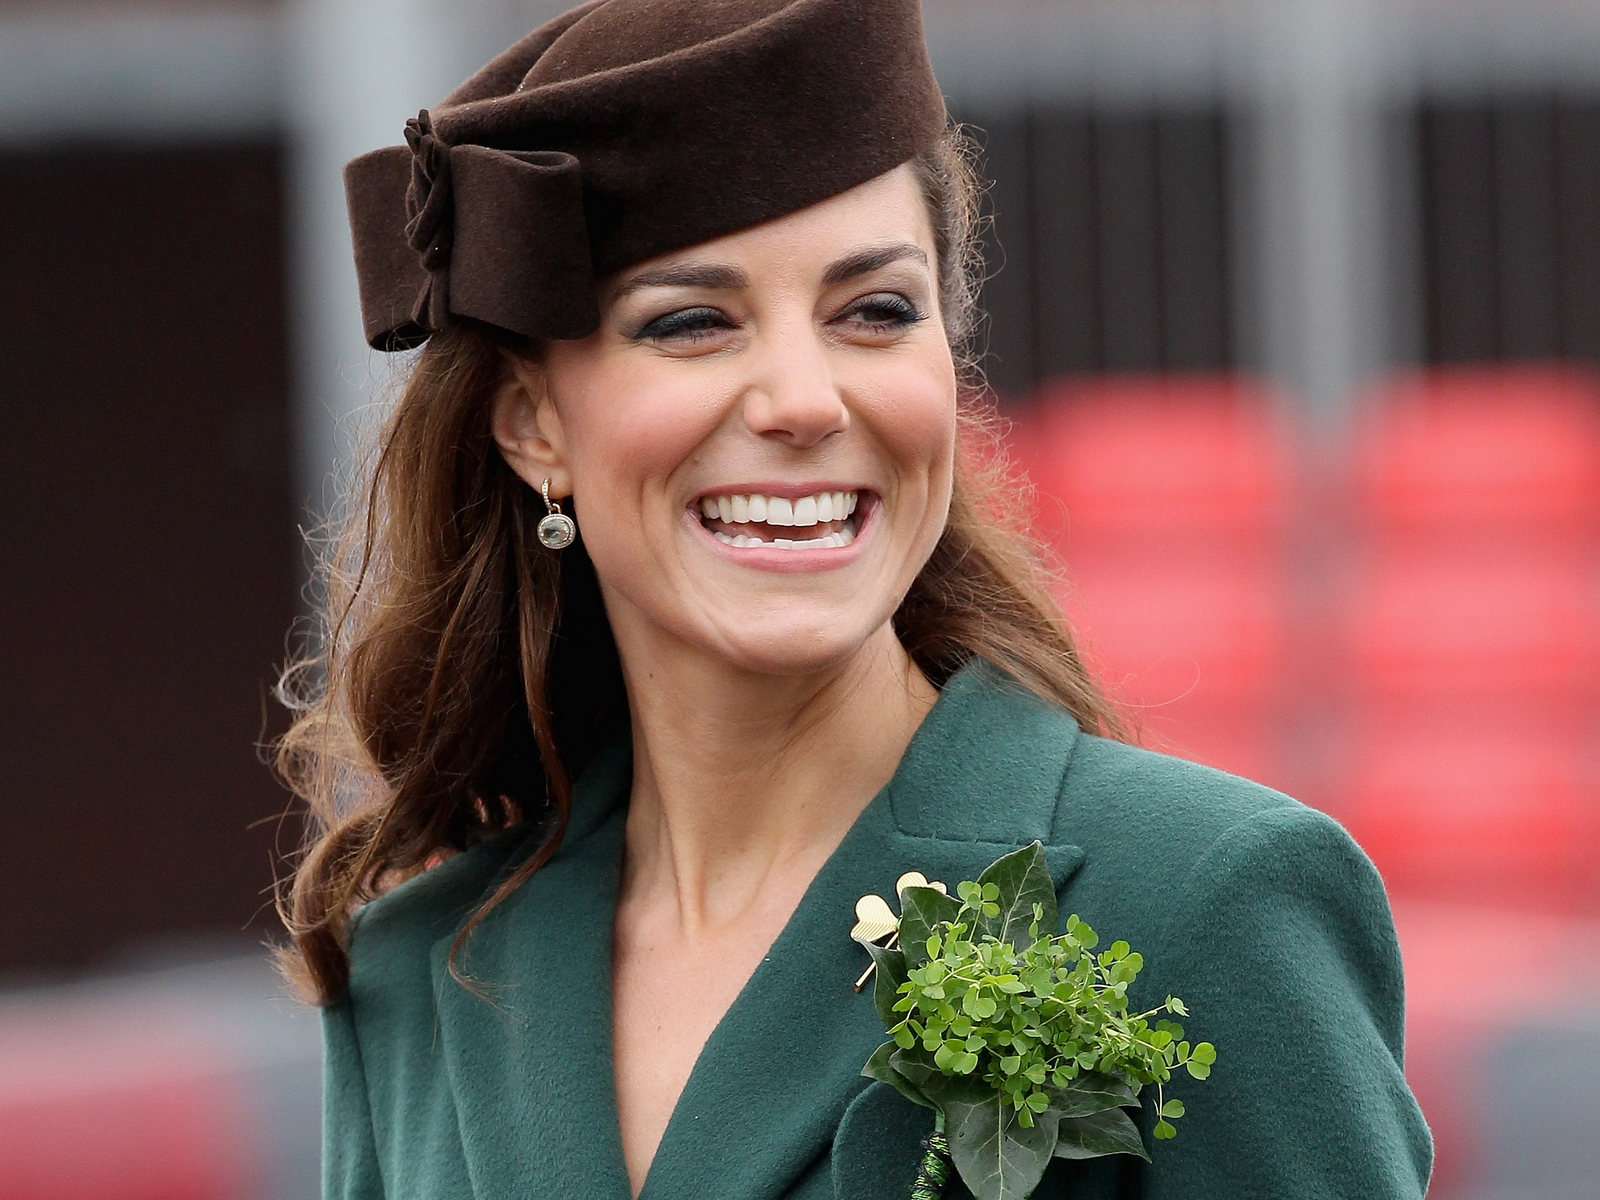 Pack144 Kate Middleton Wallpapers 1600x1200 WallpapersExpertcom 1600x1200